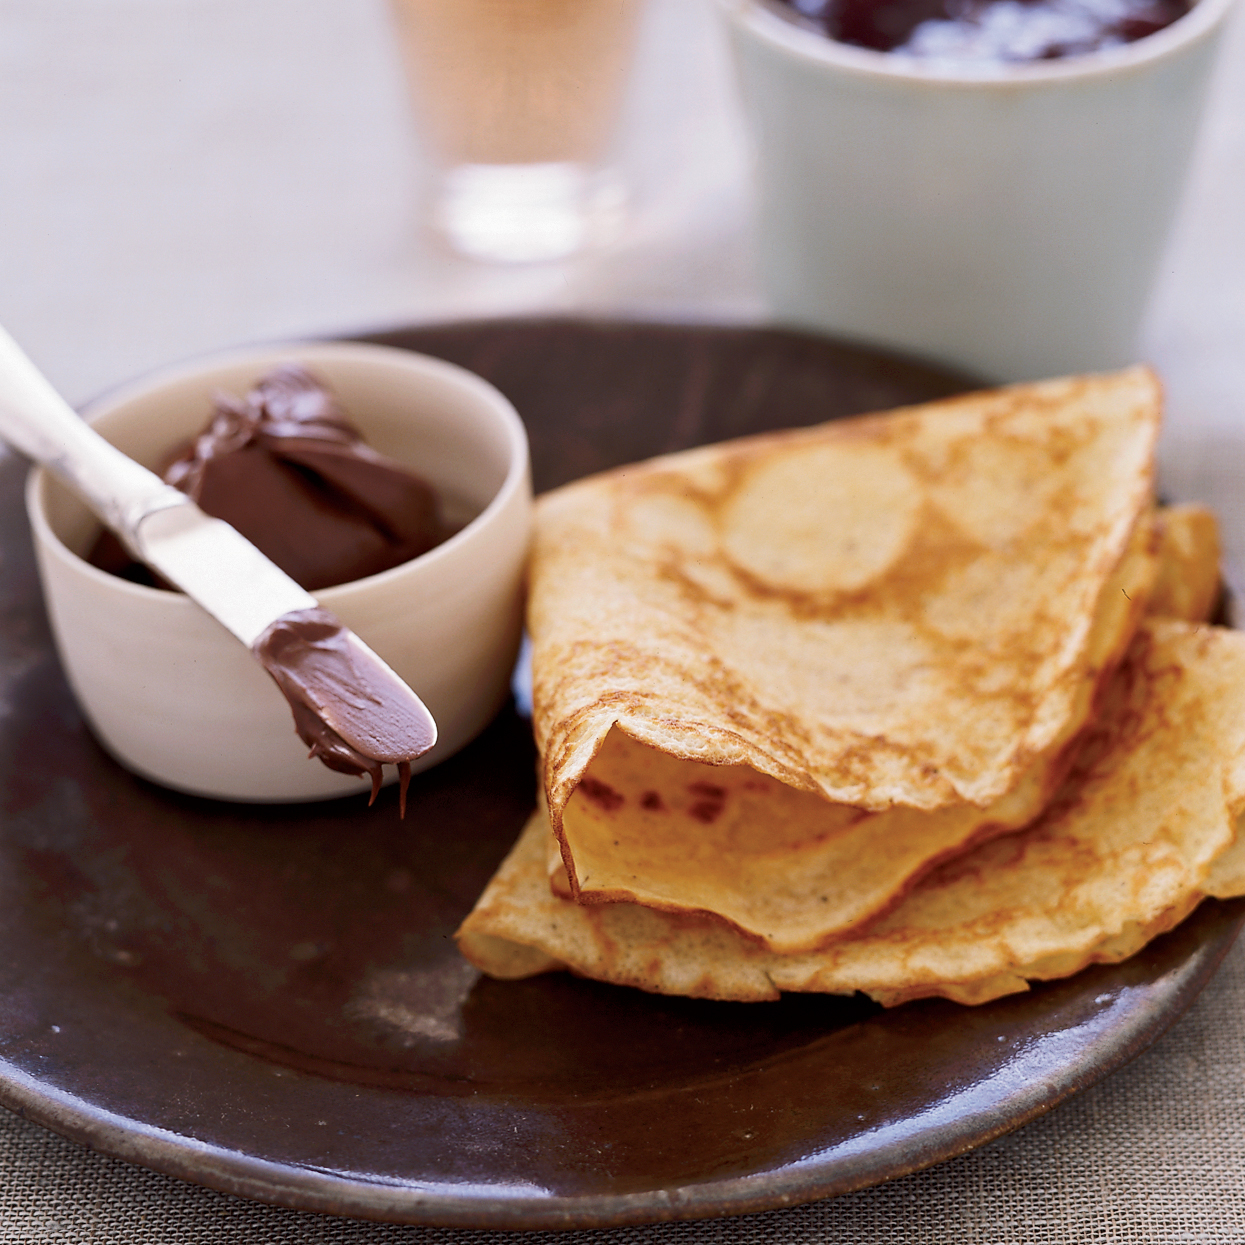 Brown Butter Cr Ecirc Pes With Nutella And Jam Recipe Mike Price Food Wine